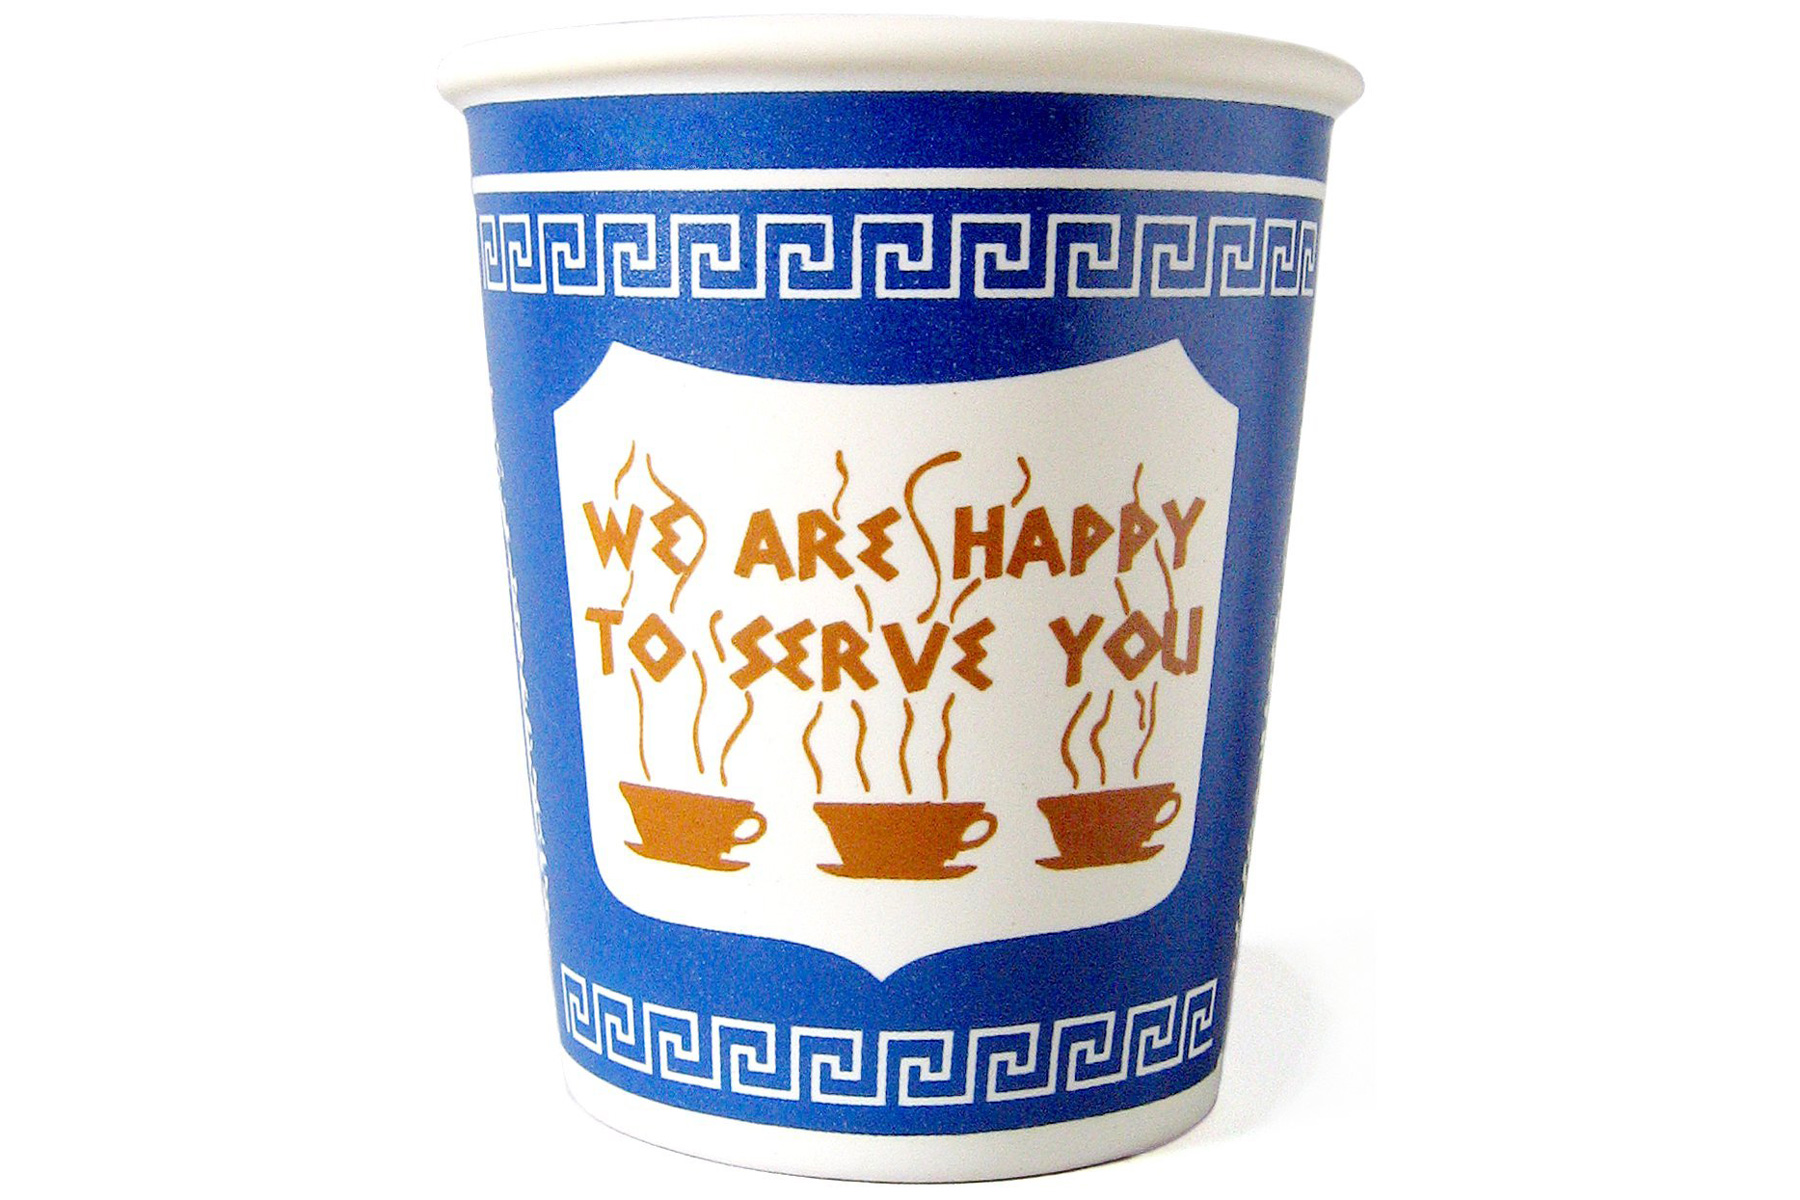 The Original NYC Greek Ceramic Coffee Cup for Amazon Prime Father's Day